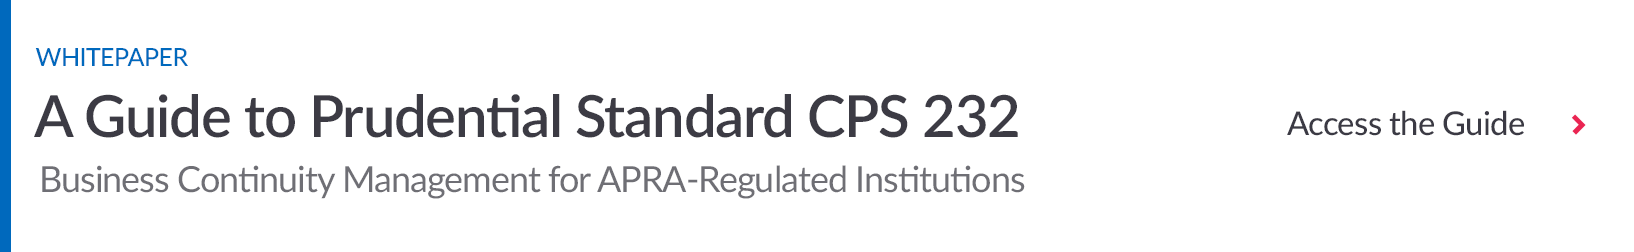 Download Prudential Standard CPS 232 for Business Continuity Guide